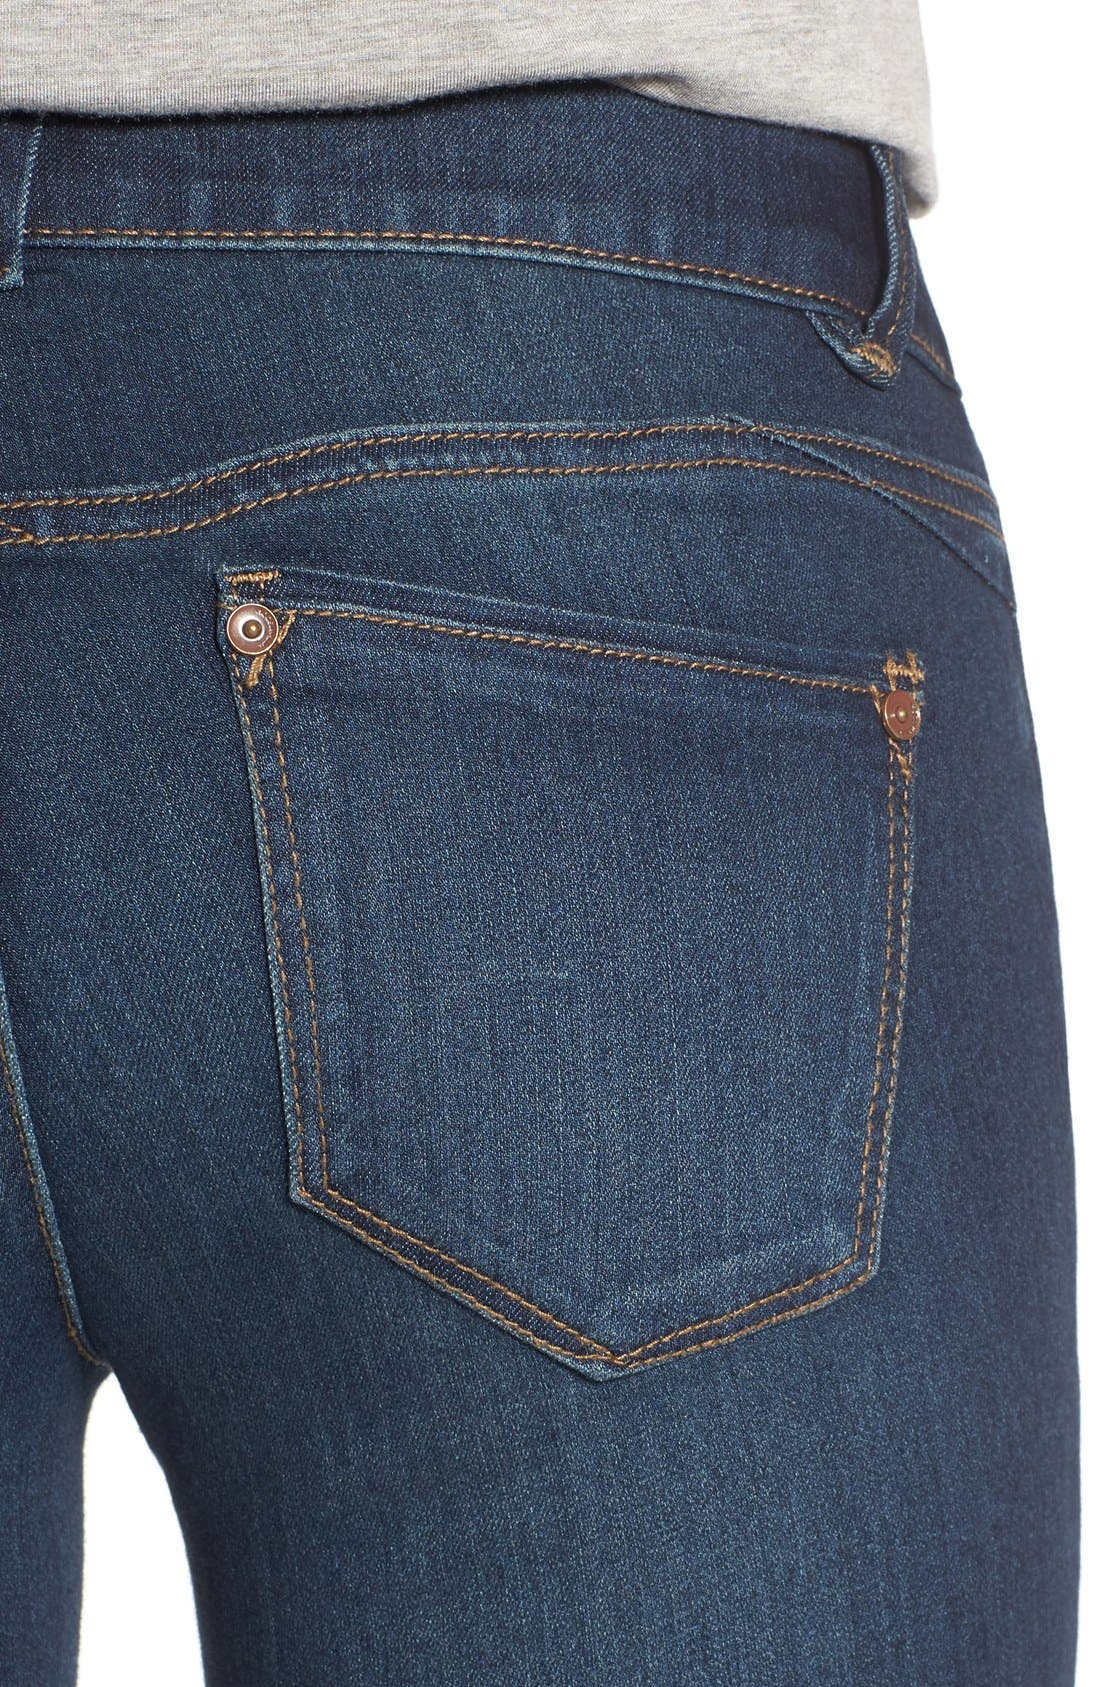 Alternate Image 4  - Wit & Wisdom 'Ab-solution' Stretch Skinny Jeans (Nordstrom Exclusive)